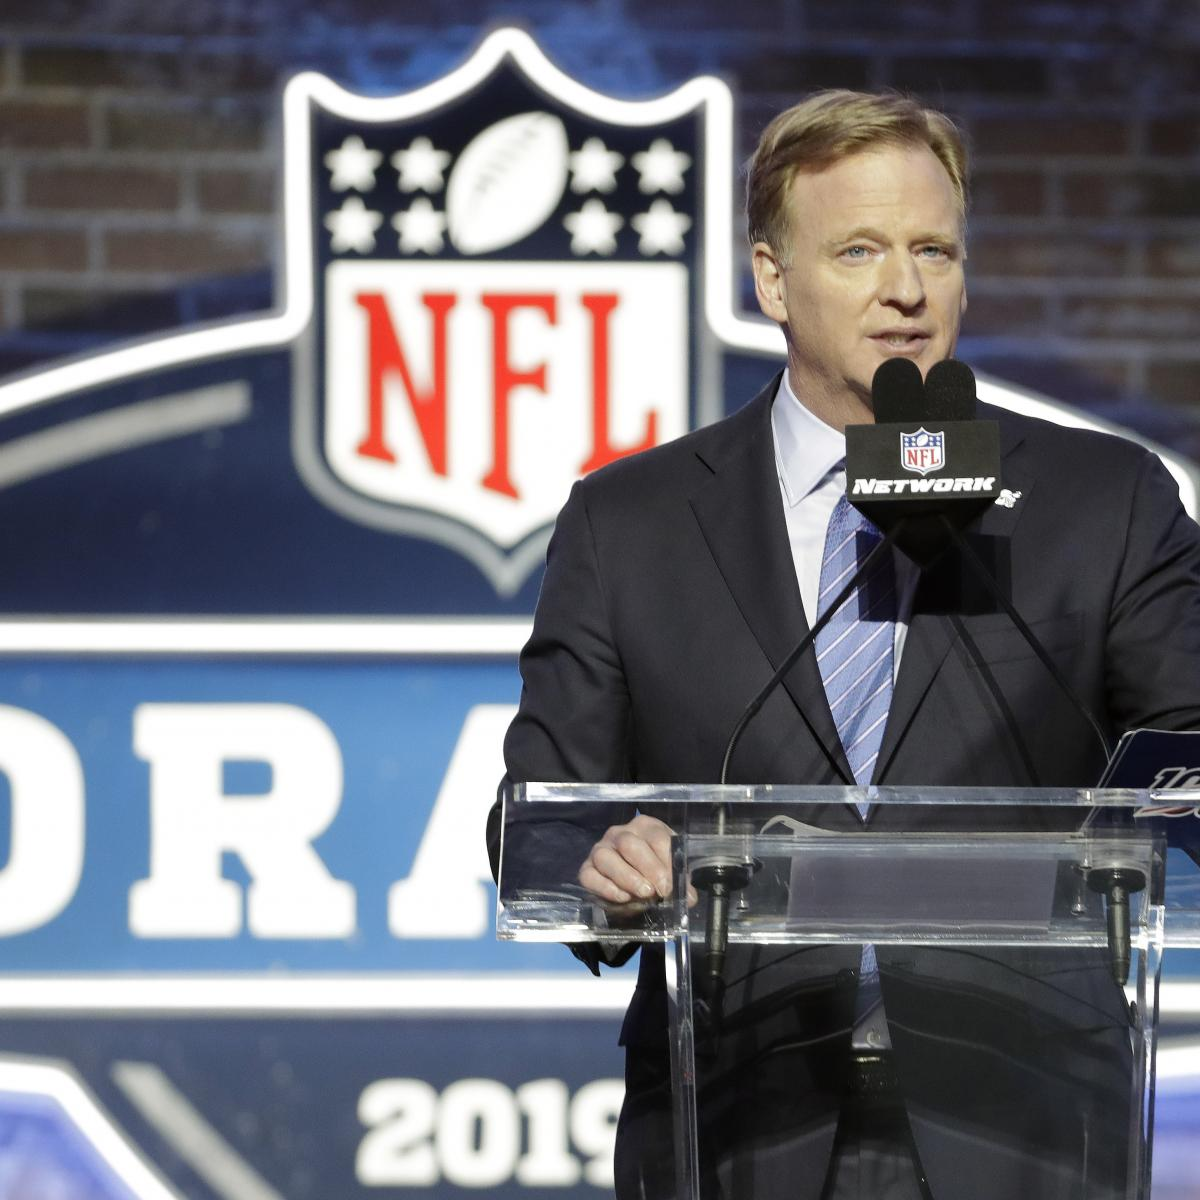 2021 NFL Draft: Round 1 Order, Odds and Sleeper Prospects to Monitor